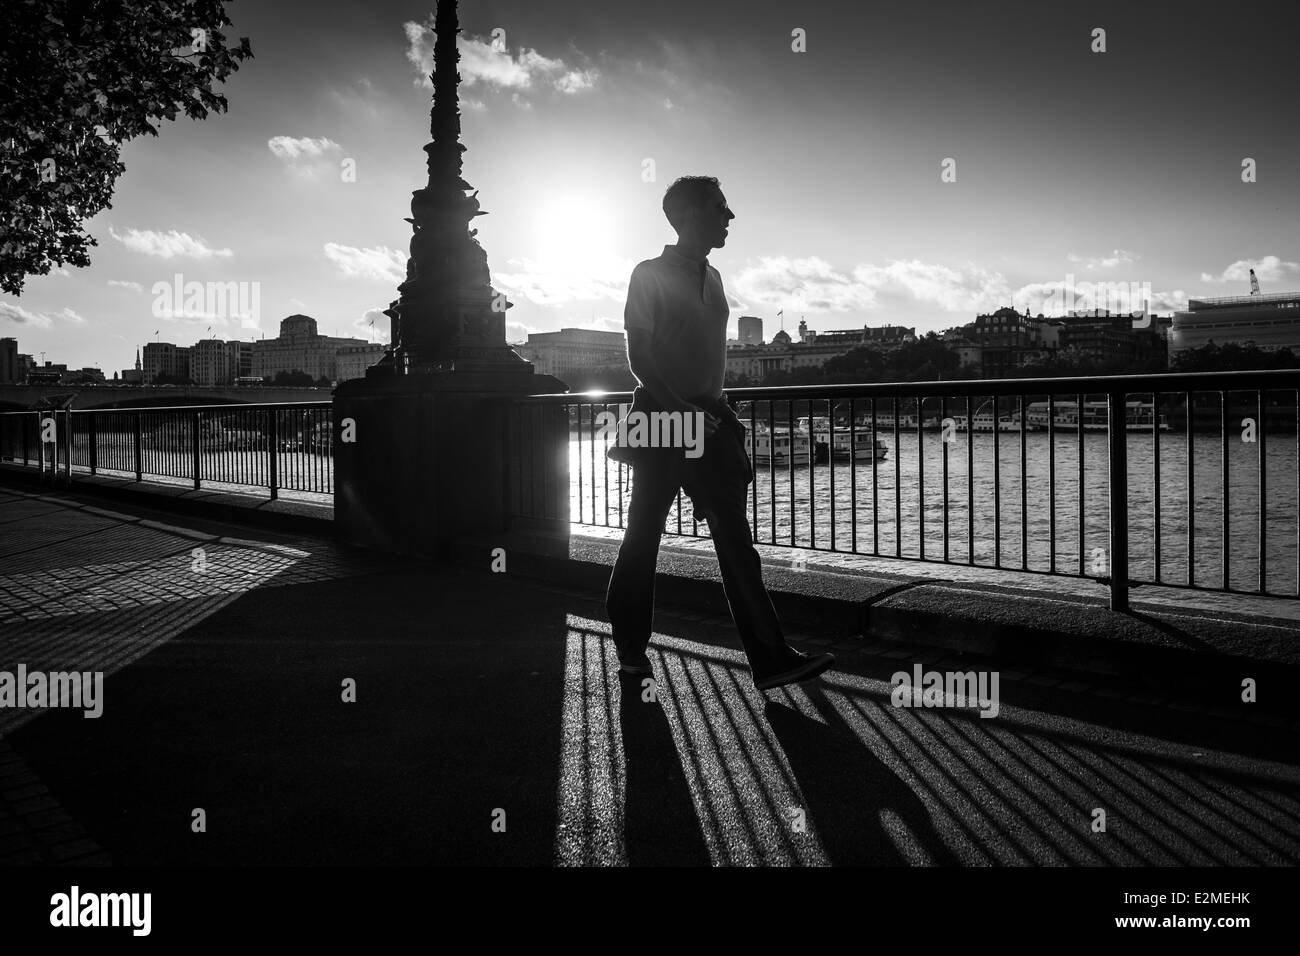 Tourist walking by the River Thames in black and white - Stock Image